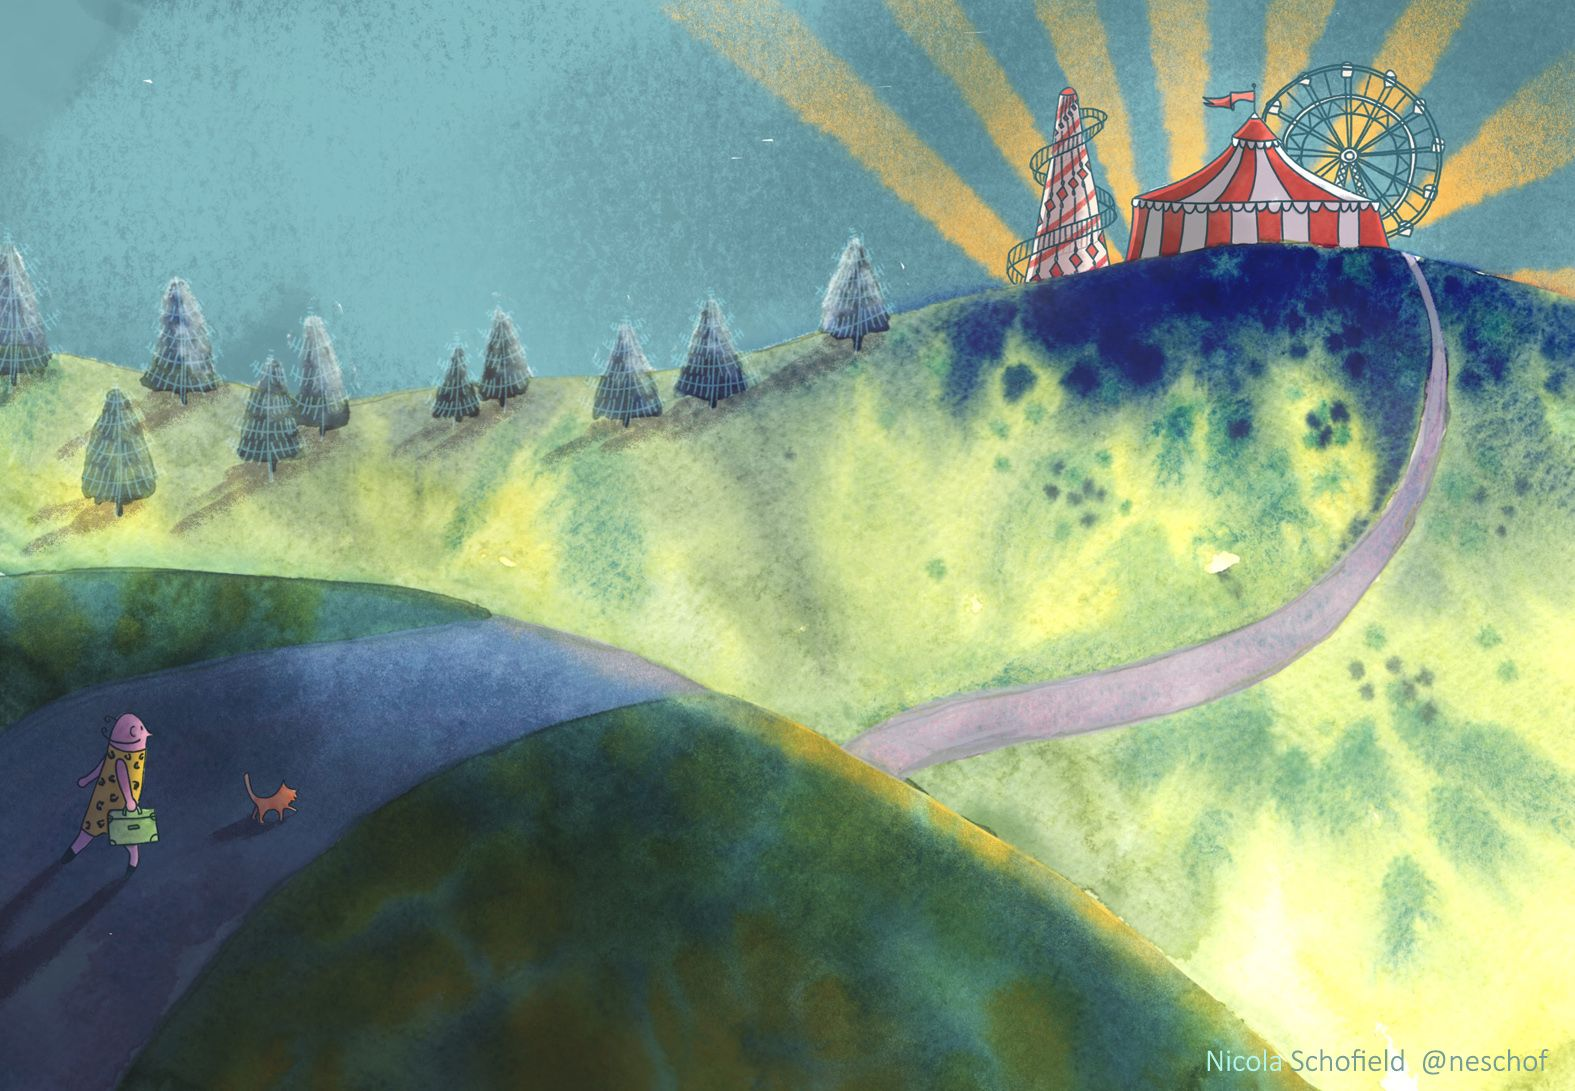 distant circus watercolour Nicola Schofield 2 low res.jpg